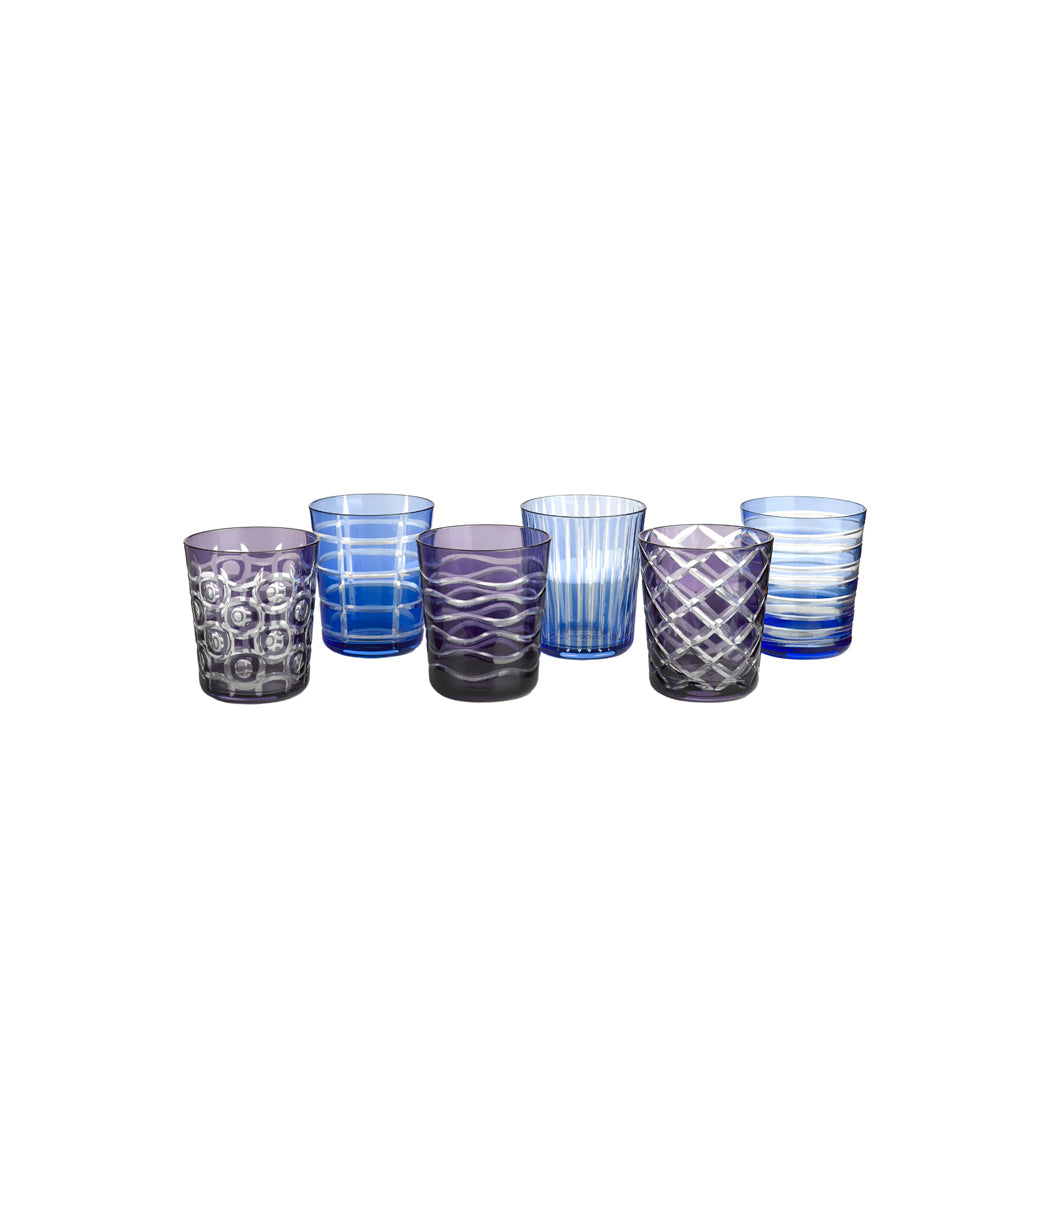 Tumbler cobalt Set of 6